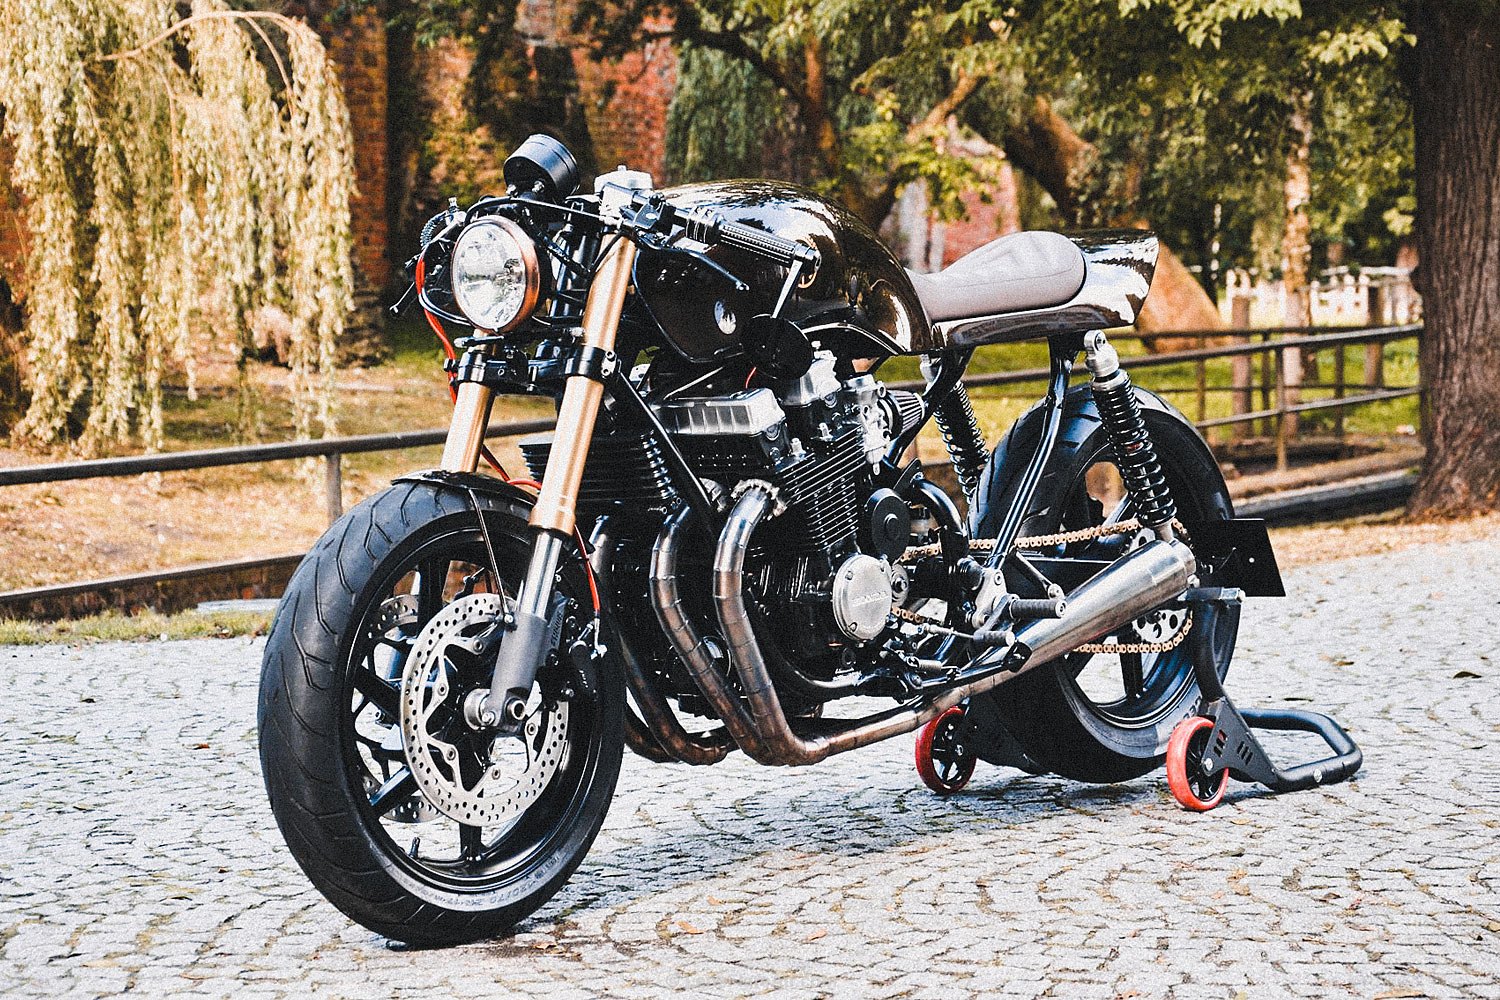 Delightful Lukasz Brewus Gives Us An Insight Into How The Family Approach Business In  The Custom Scene U201cMotorcycles Are Not The Only Way To Make Money, ...